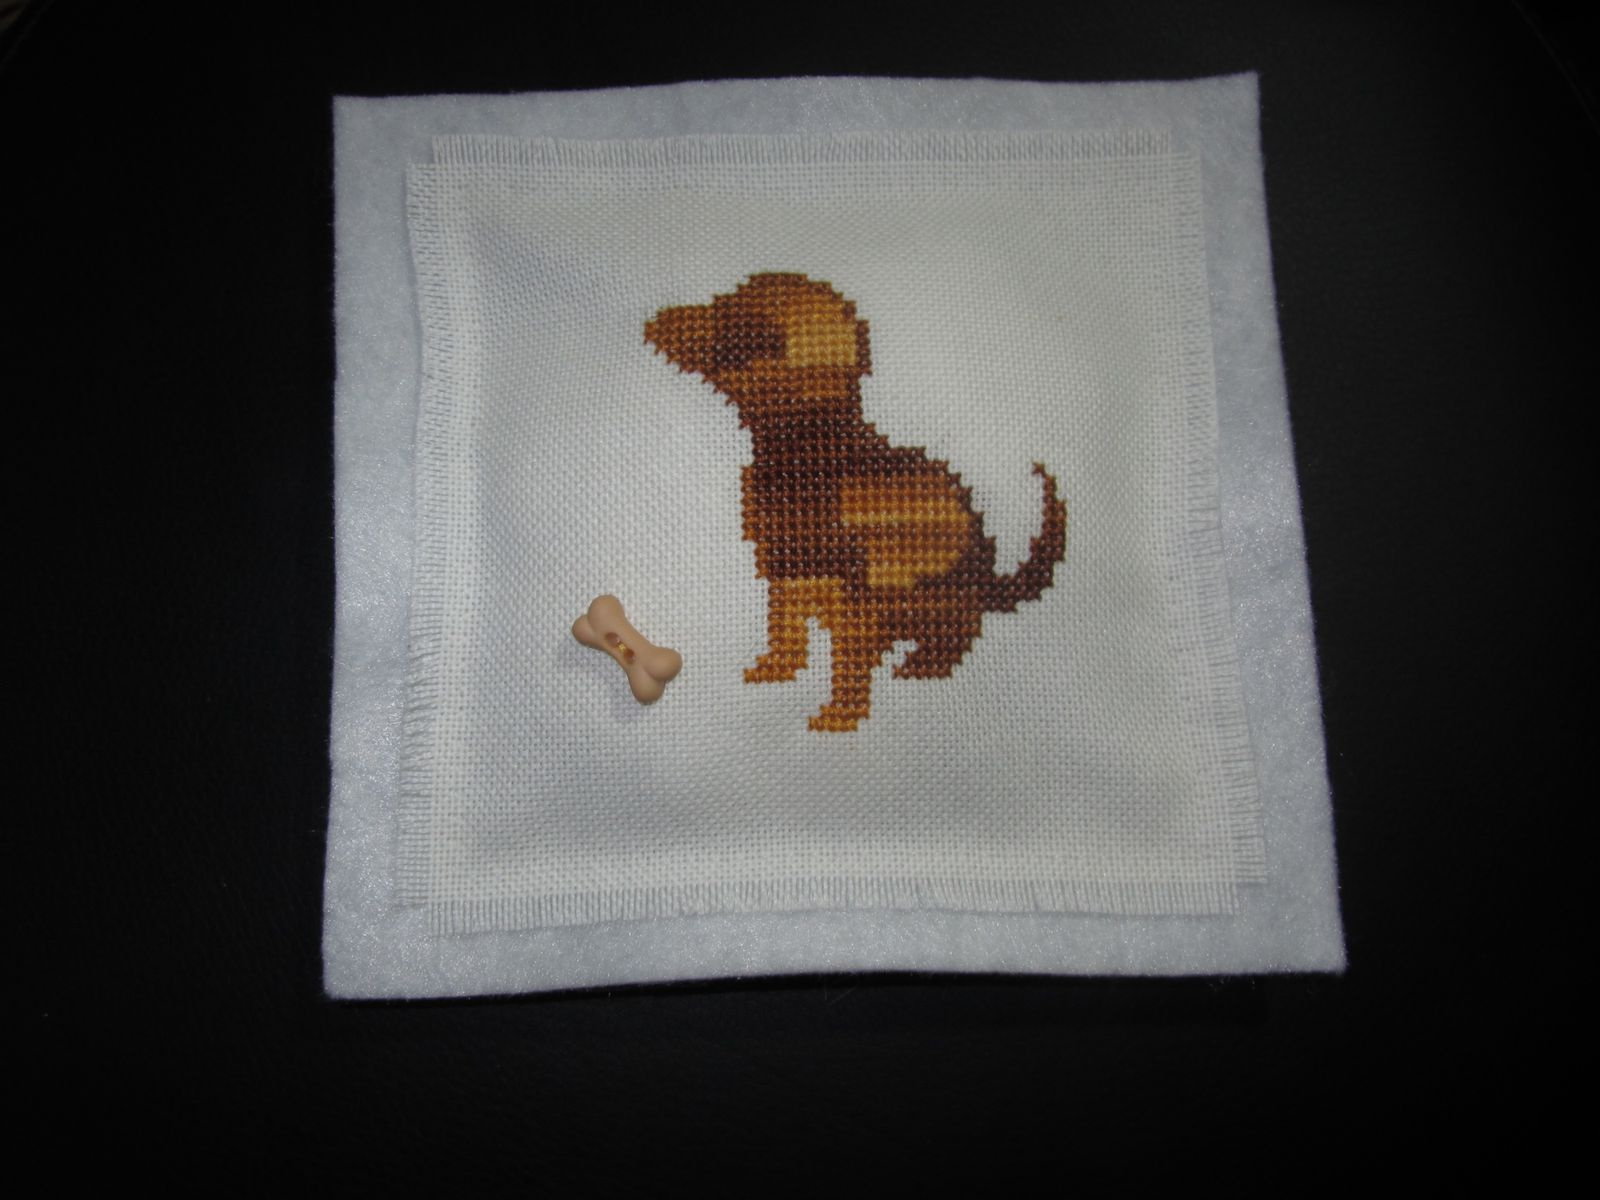 broderie-2012 1373